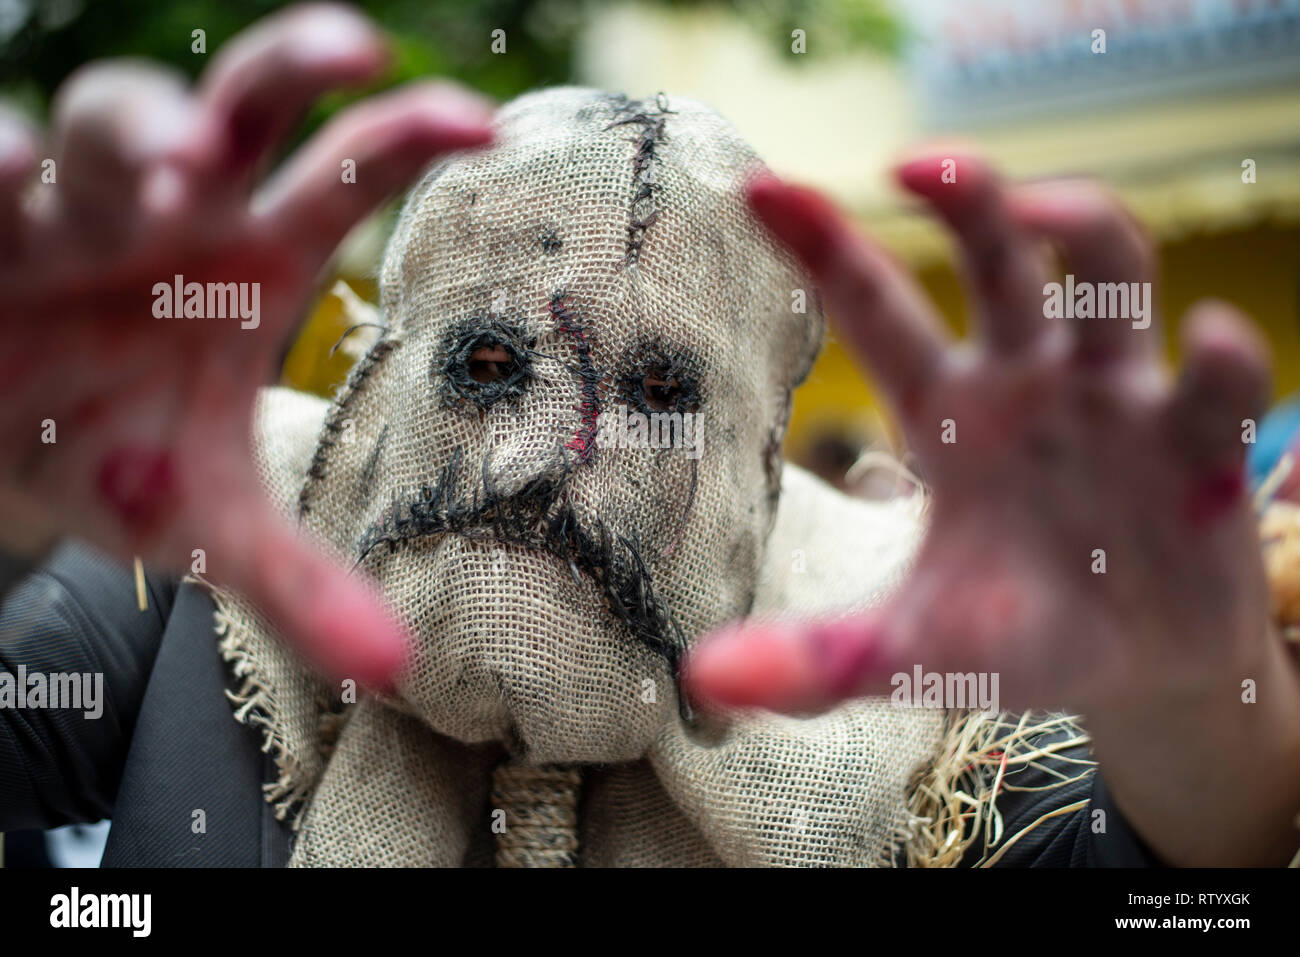 Scary Stories Stock Photos & Scary Stories Stock Images